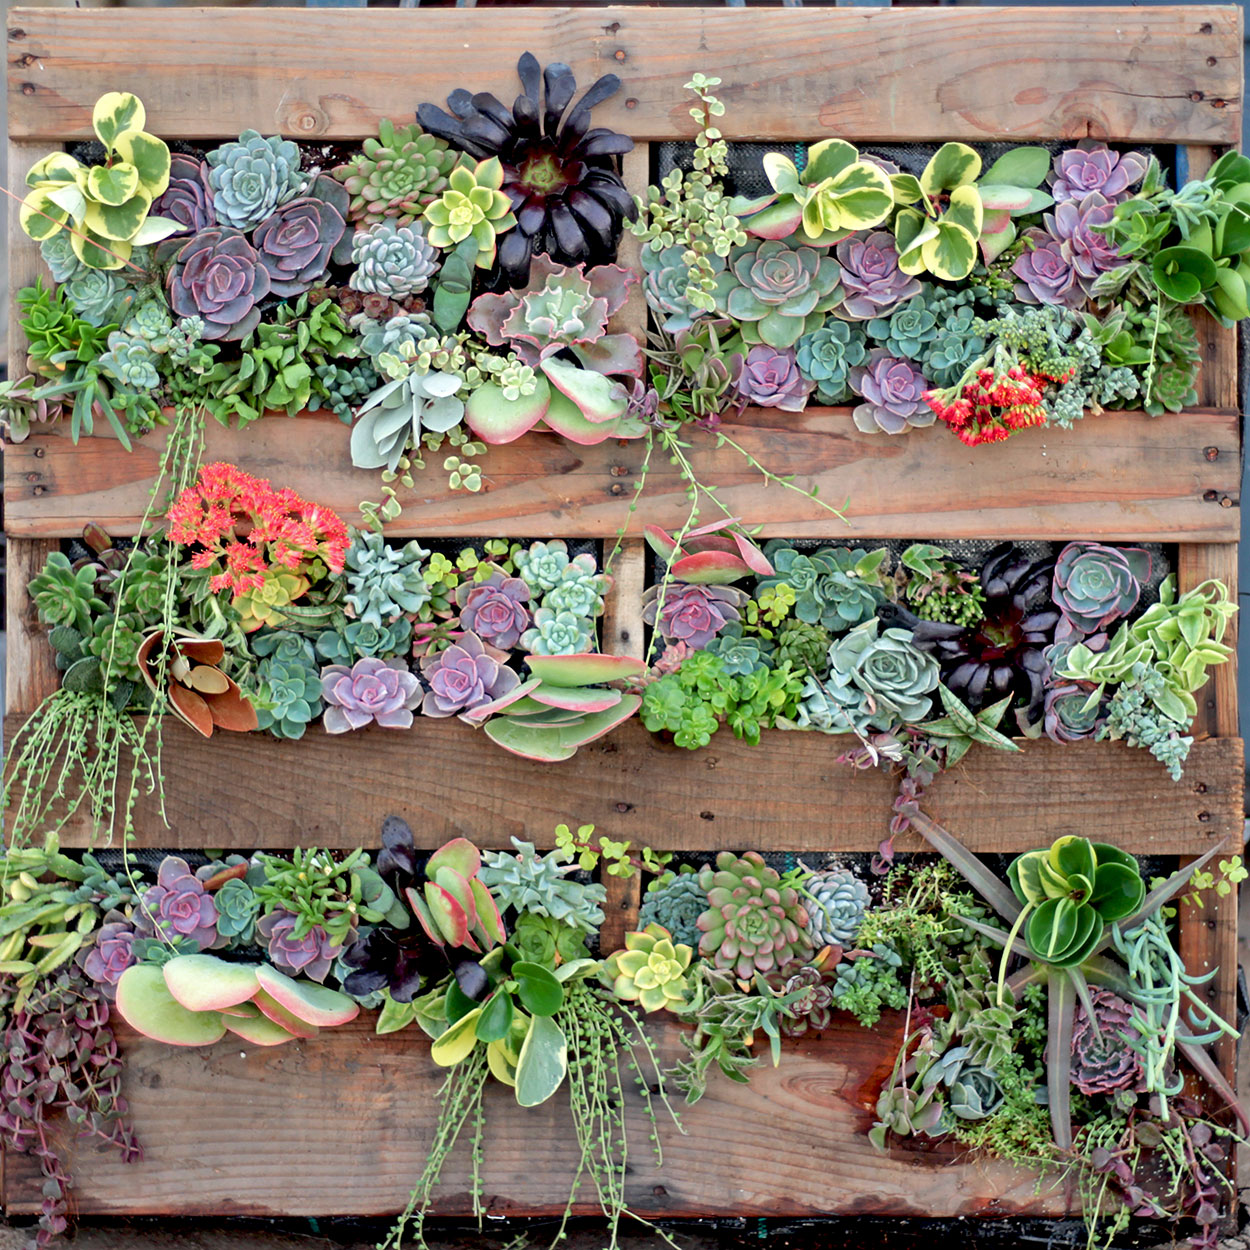 DIY Succulent Living Wall Using Wood Pallet